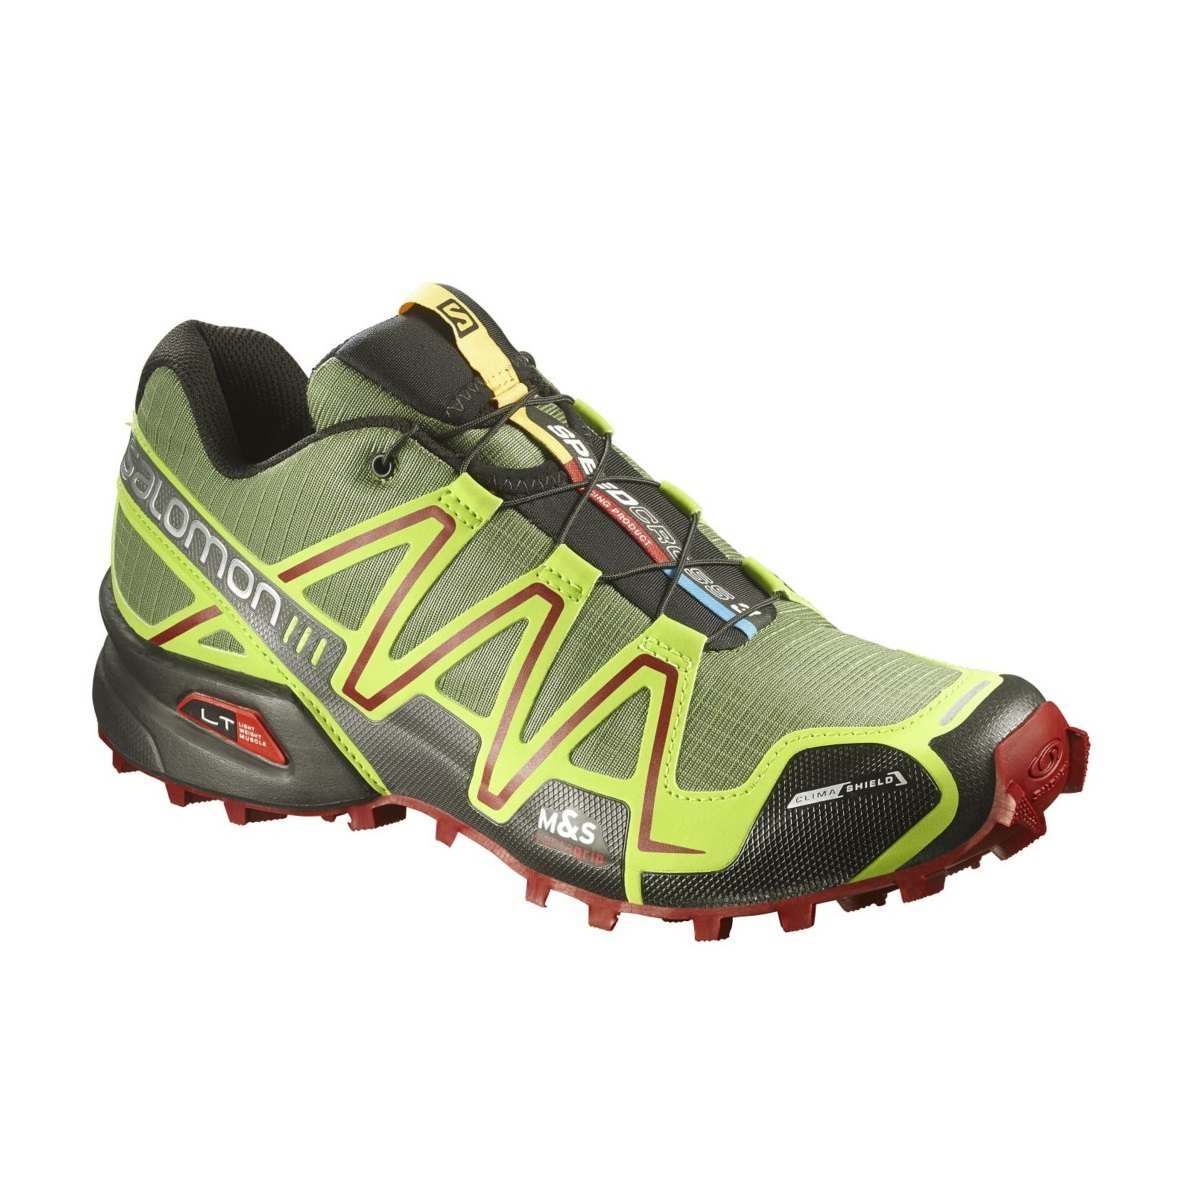 salomon speedcross 3 cs shoes running trail running sport outdoor men 39 s ebay. Black Bedroom Furniture Sets. Home Design Ideas